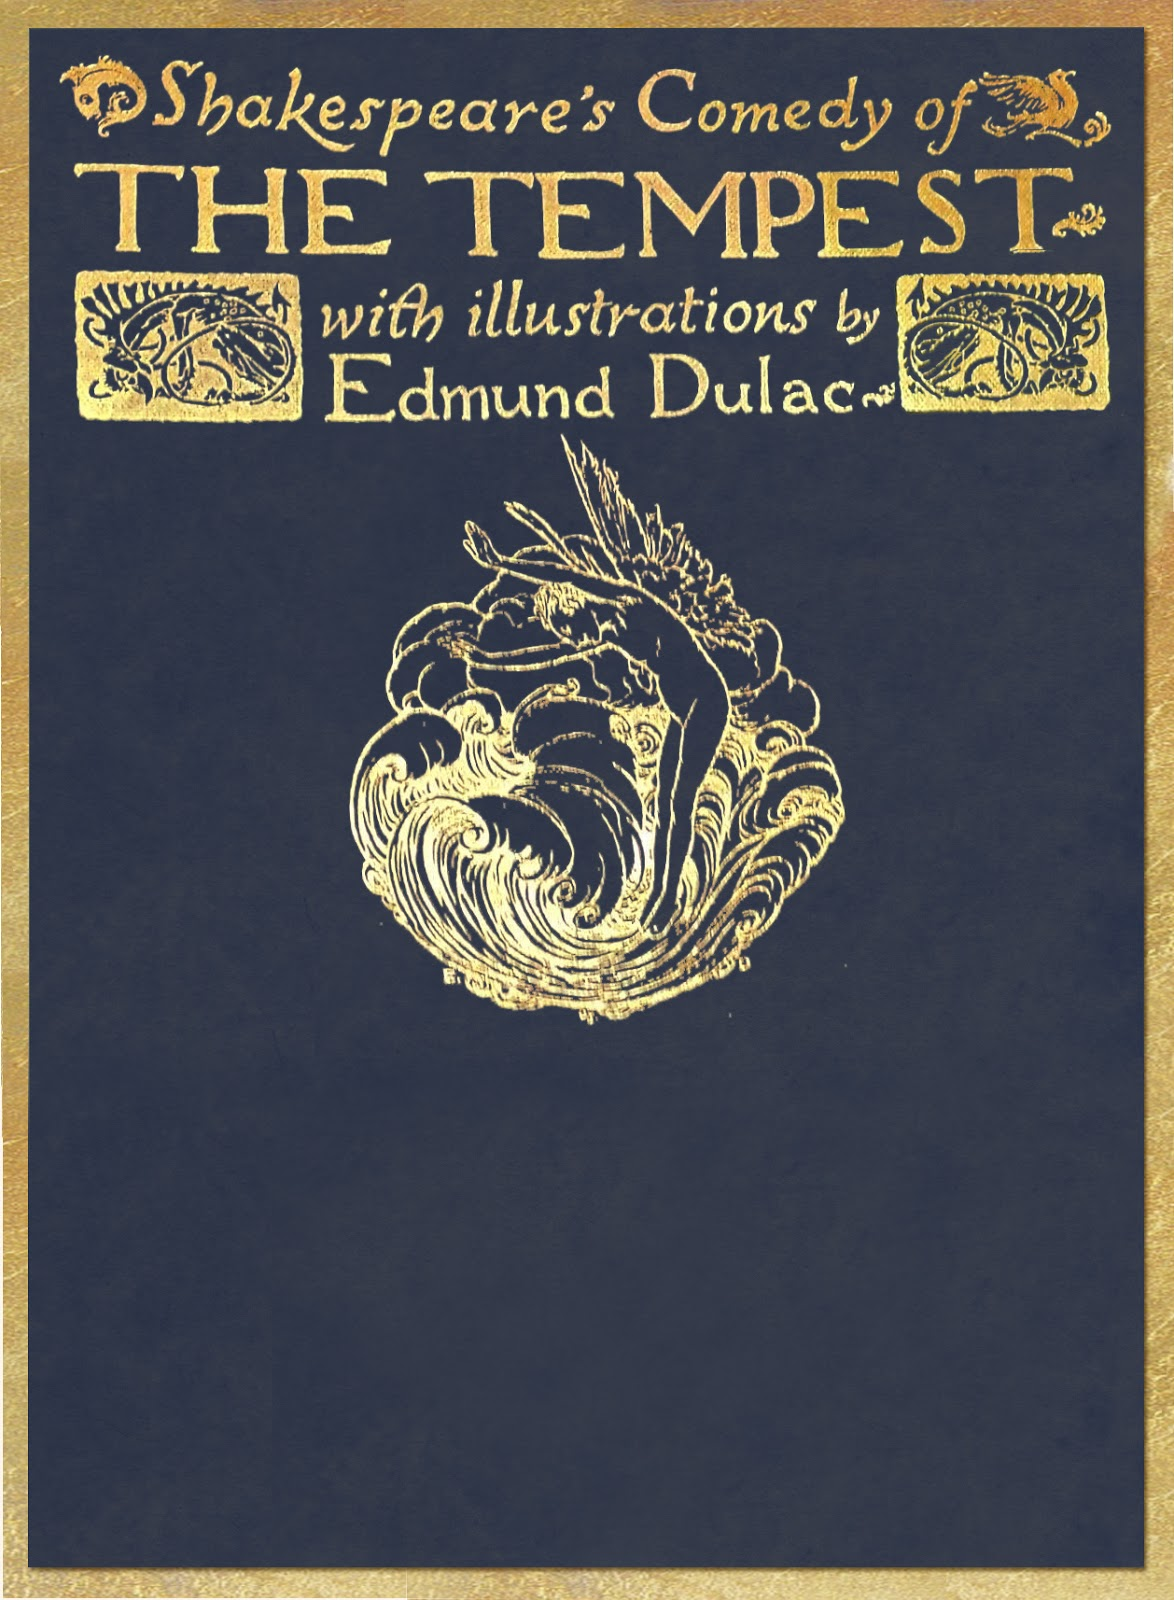 essay on the tempest by shakespeare common themes found within the tempest by william shakespeare in addition to the study guide questions, one essay question from each theme must be answered and typed (12 point) times new roman.